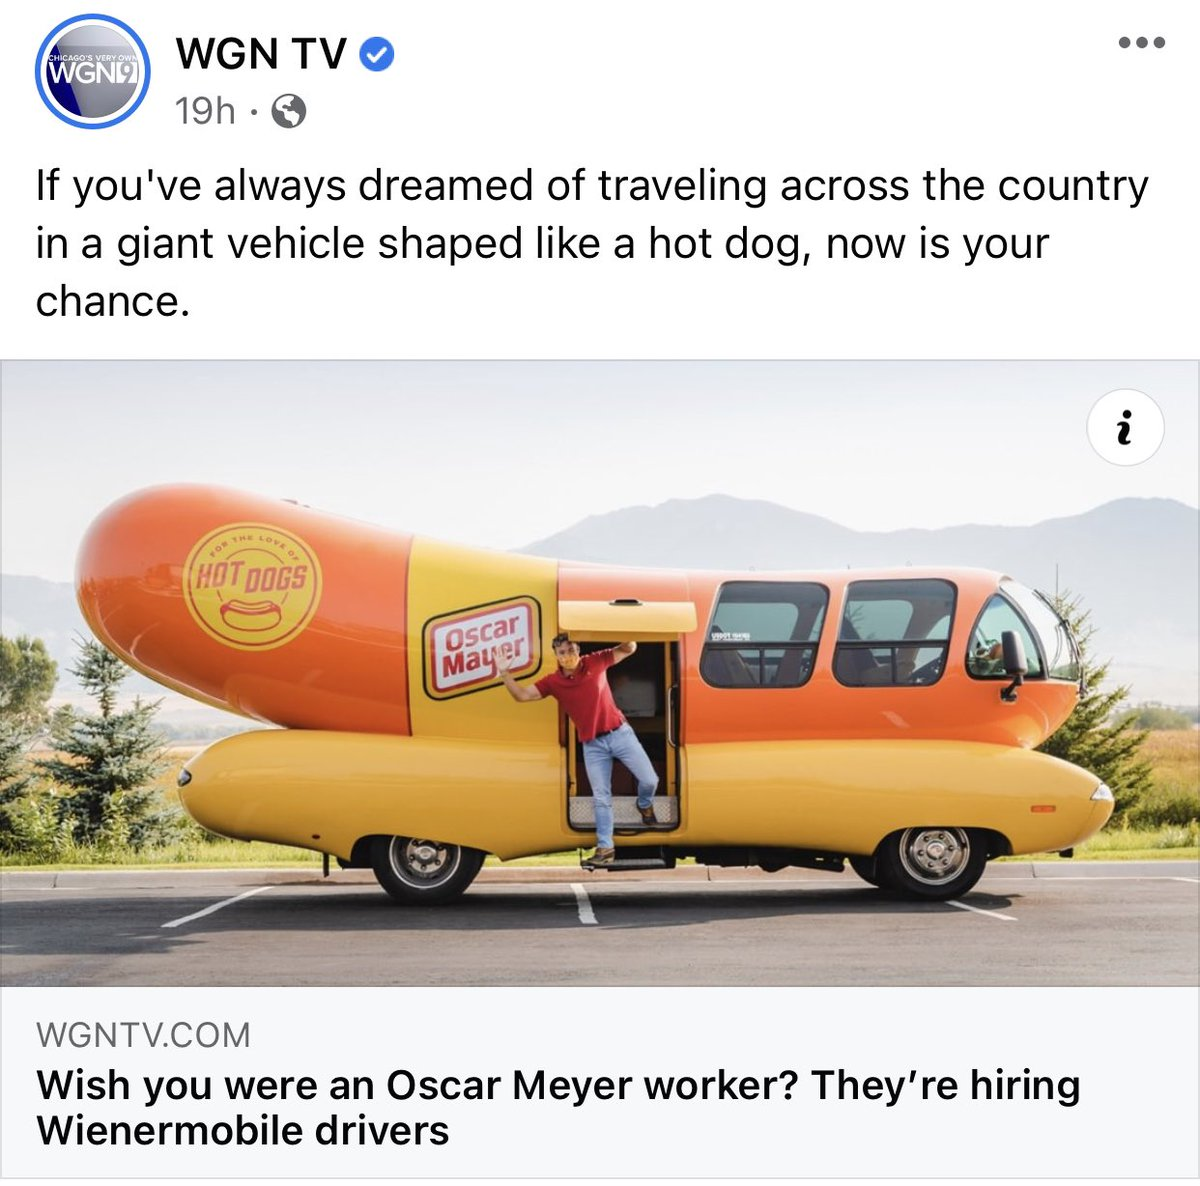 911: what's your emergency   Driver: I backed my wiener into another car   911: *hangs up   #PEAKSquad https://t.co/kQ5tnKLb1w